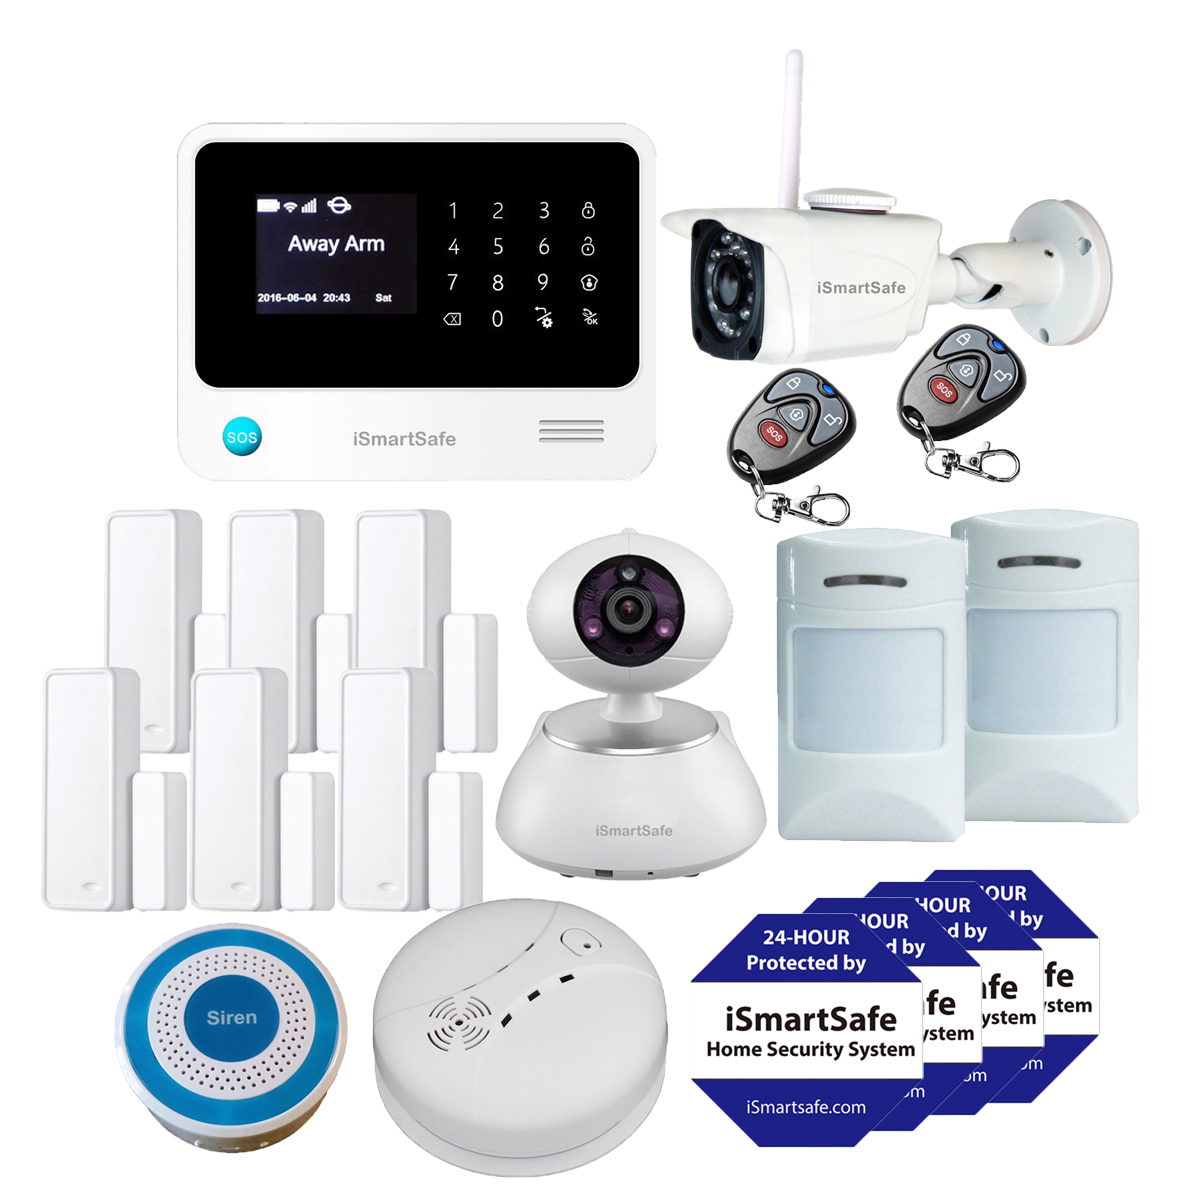 thesis on home security systems This study aimed to develop a system that can provide security on home through  the integration of different security devices the study sought to determine the.